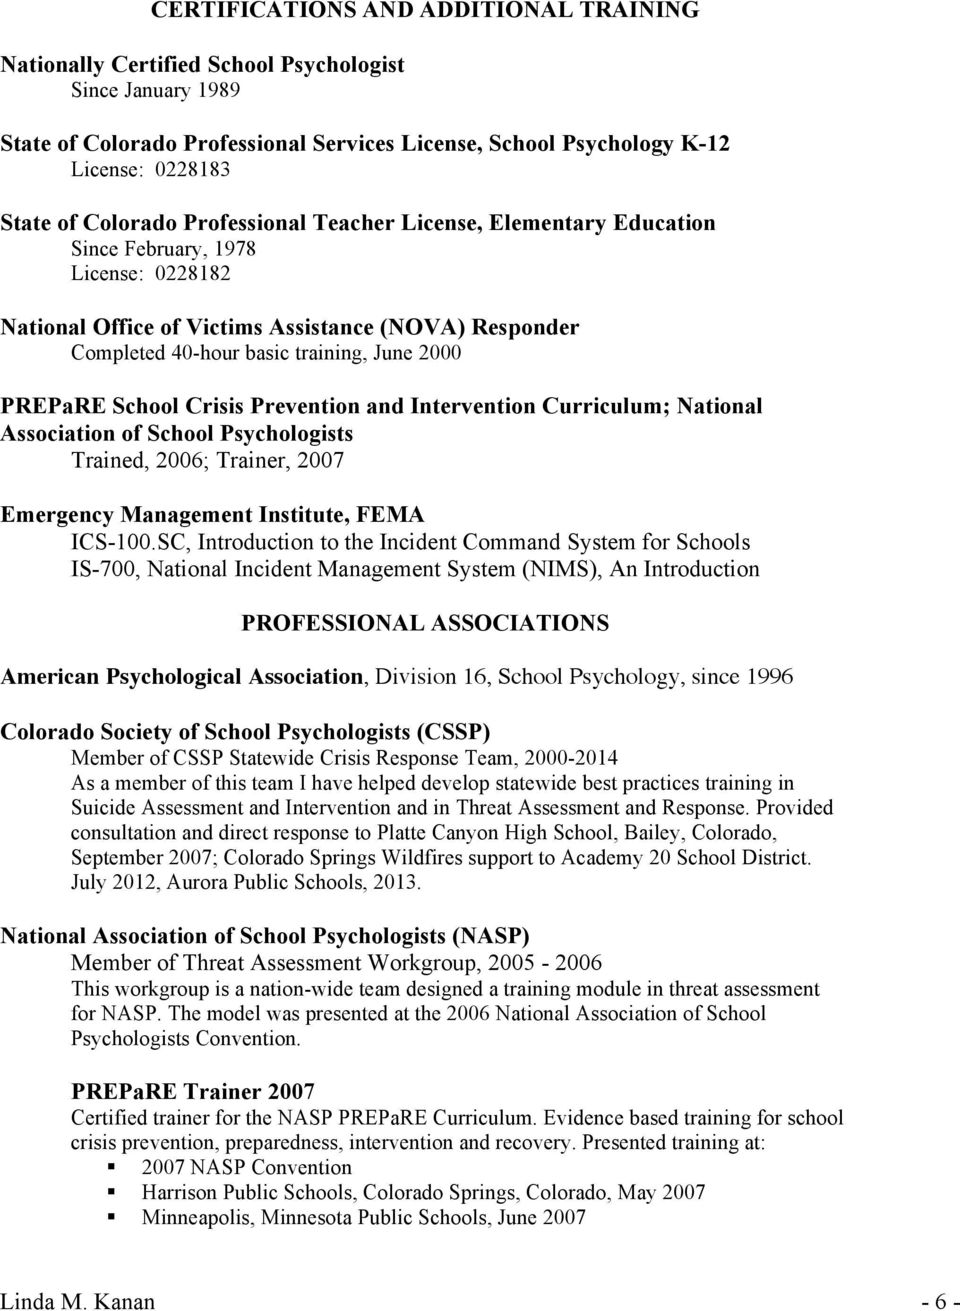 PREPaRE School Crisis Prevention and Intervention Curriculum; National Association of School Psychologists Trained, 2006; Trainer, 2007 Emergency Management Institute, FEMA ICS-100.